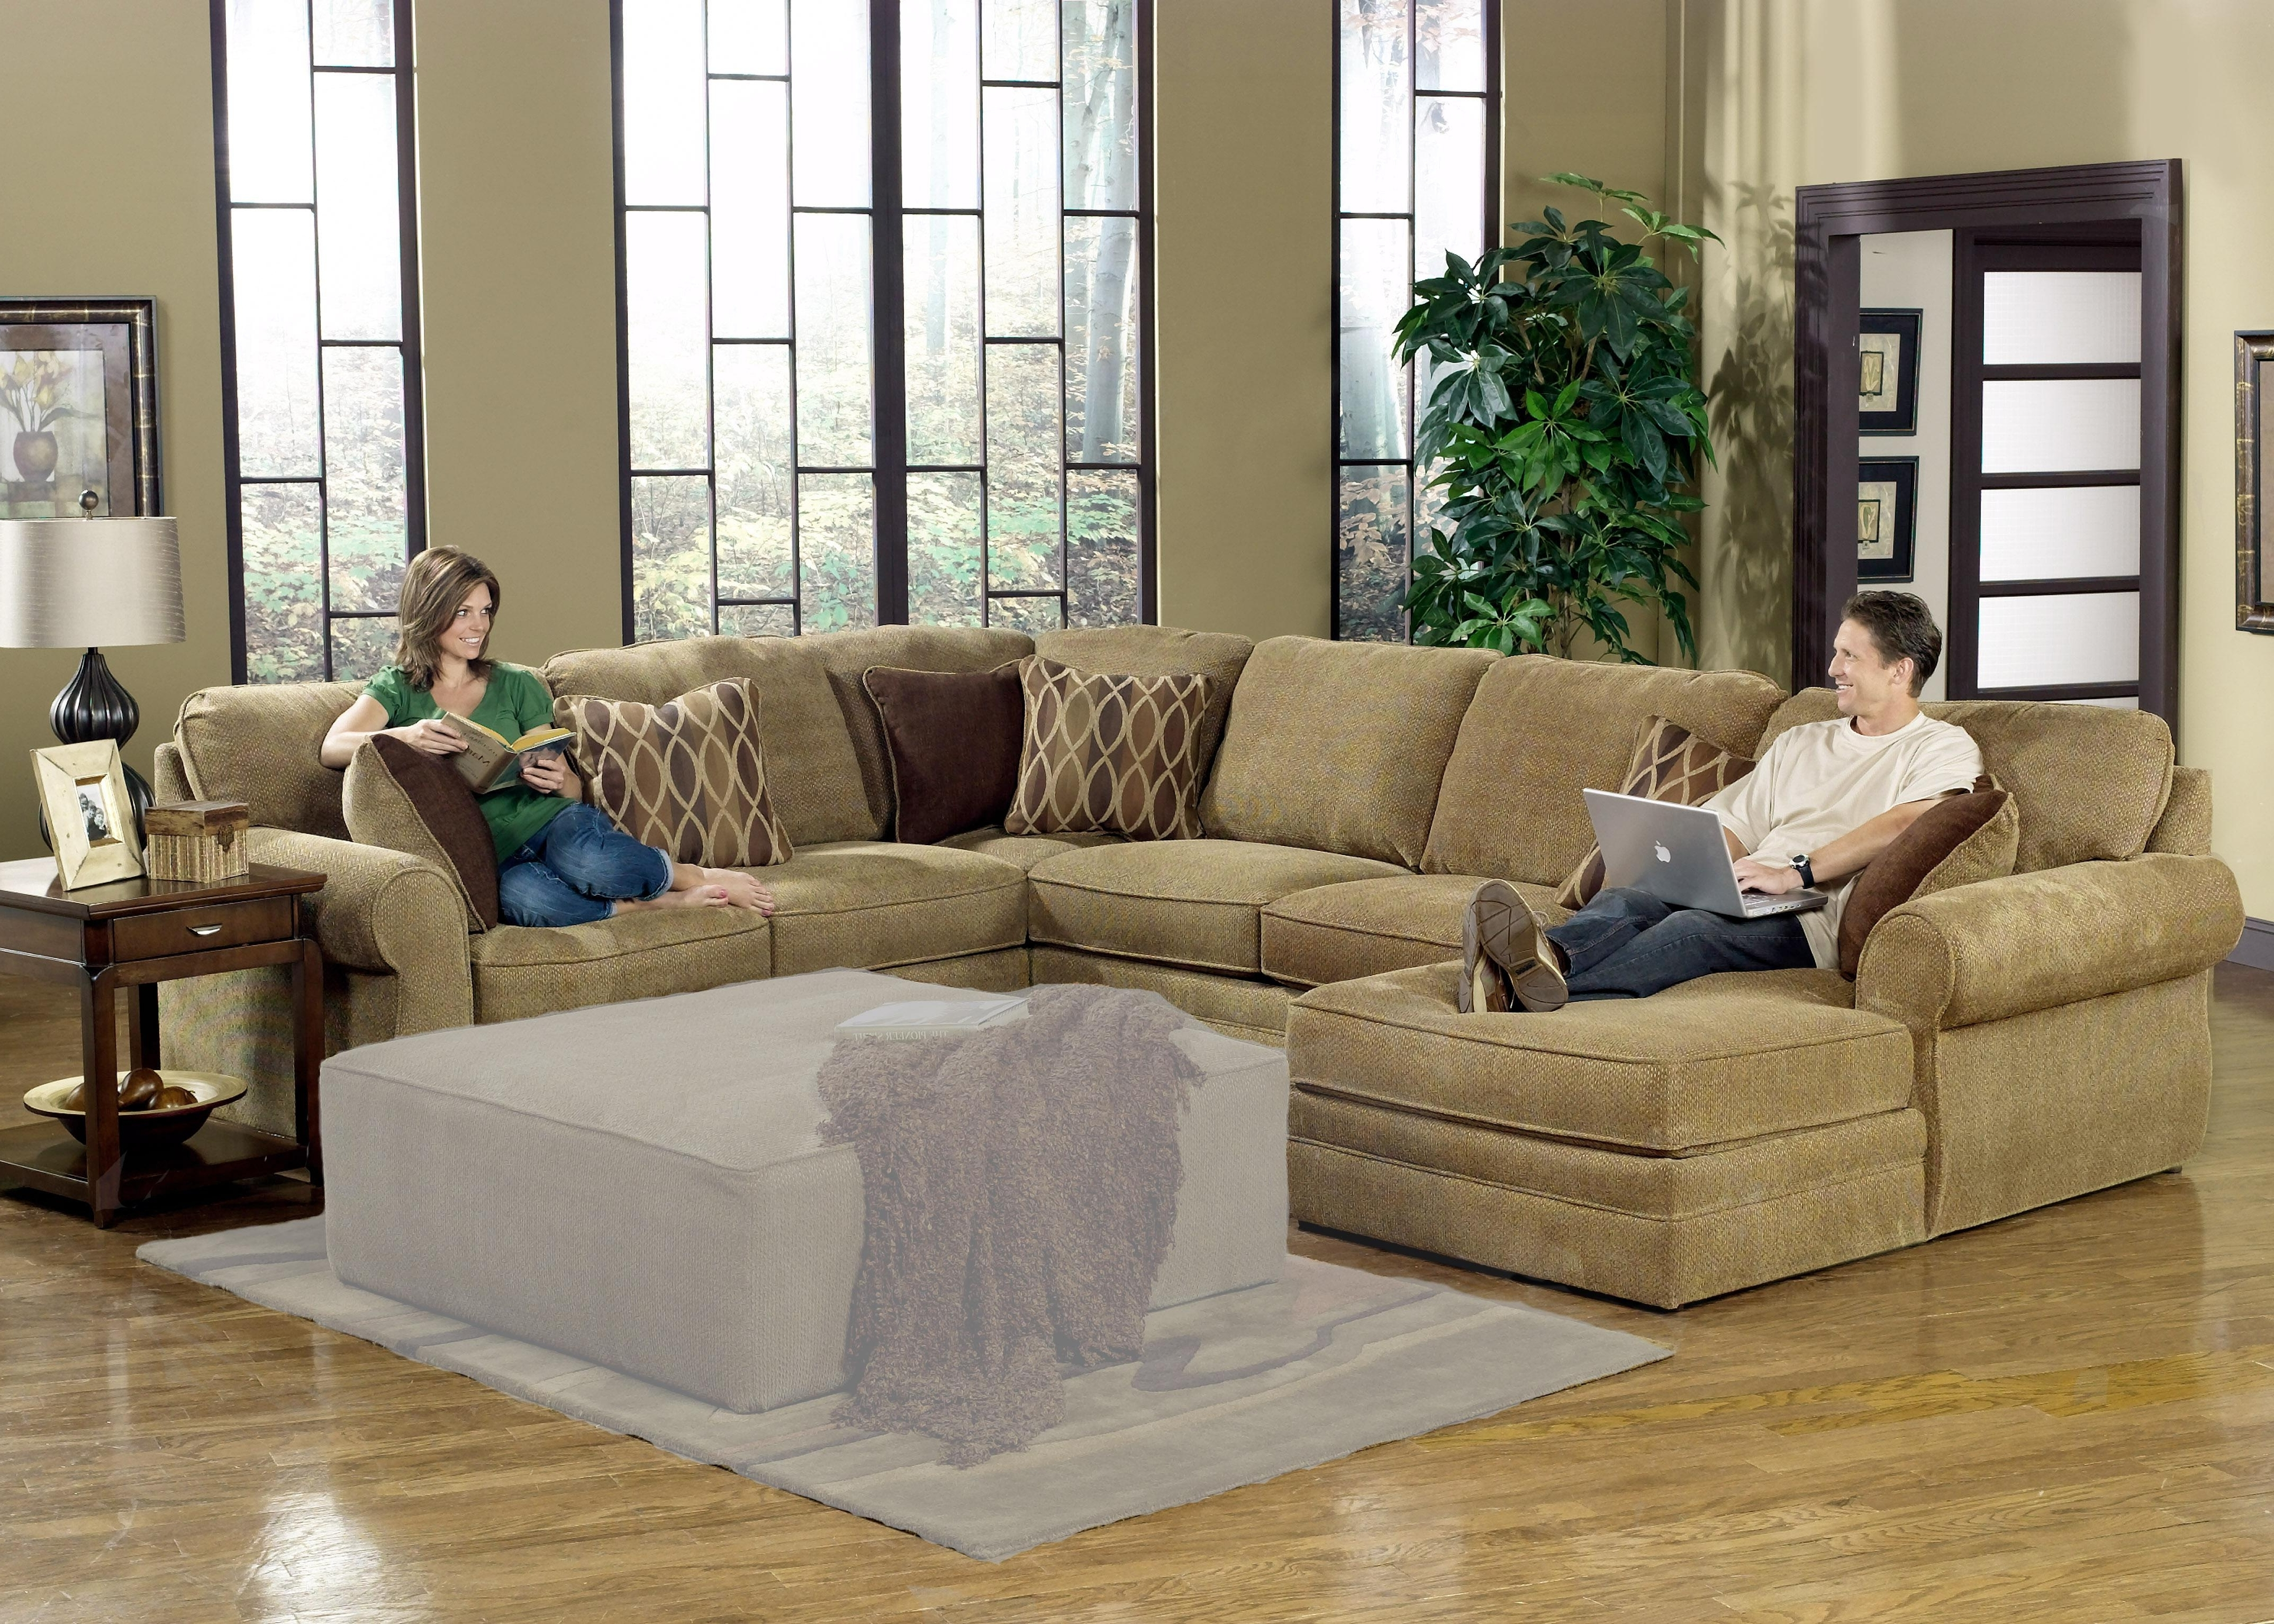 Discount Sofas (View 3 of 20)